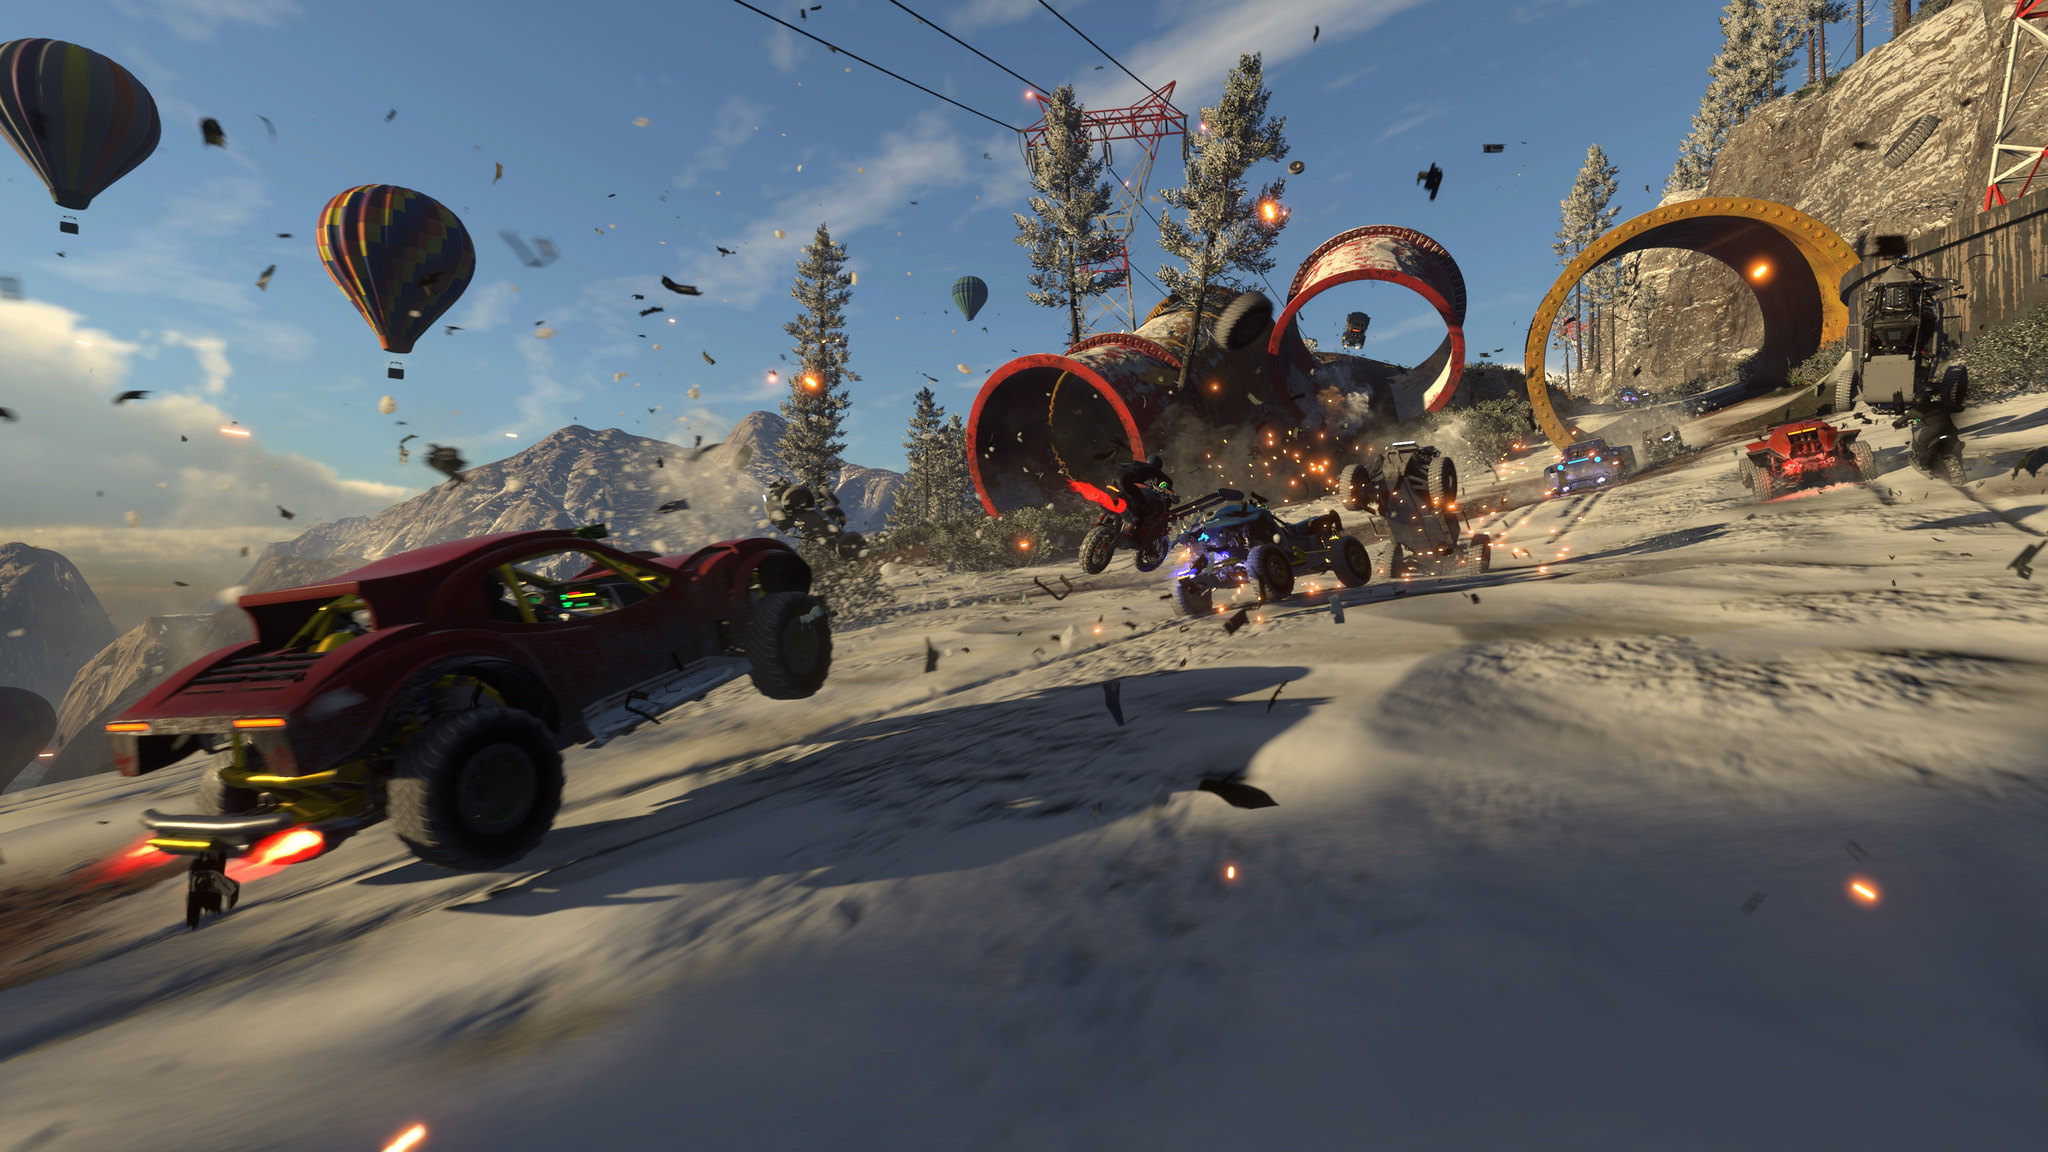 Arcade Racer Onrush Is Getting an Open Beta This Month